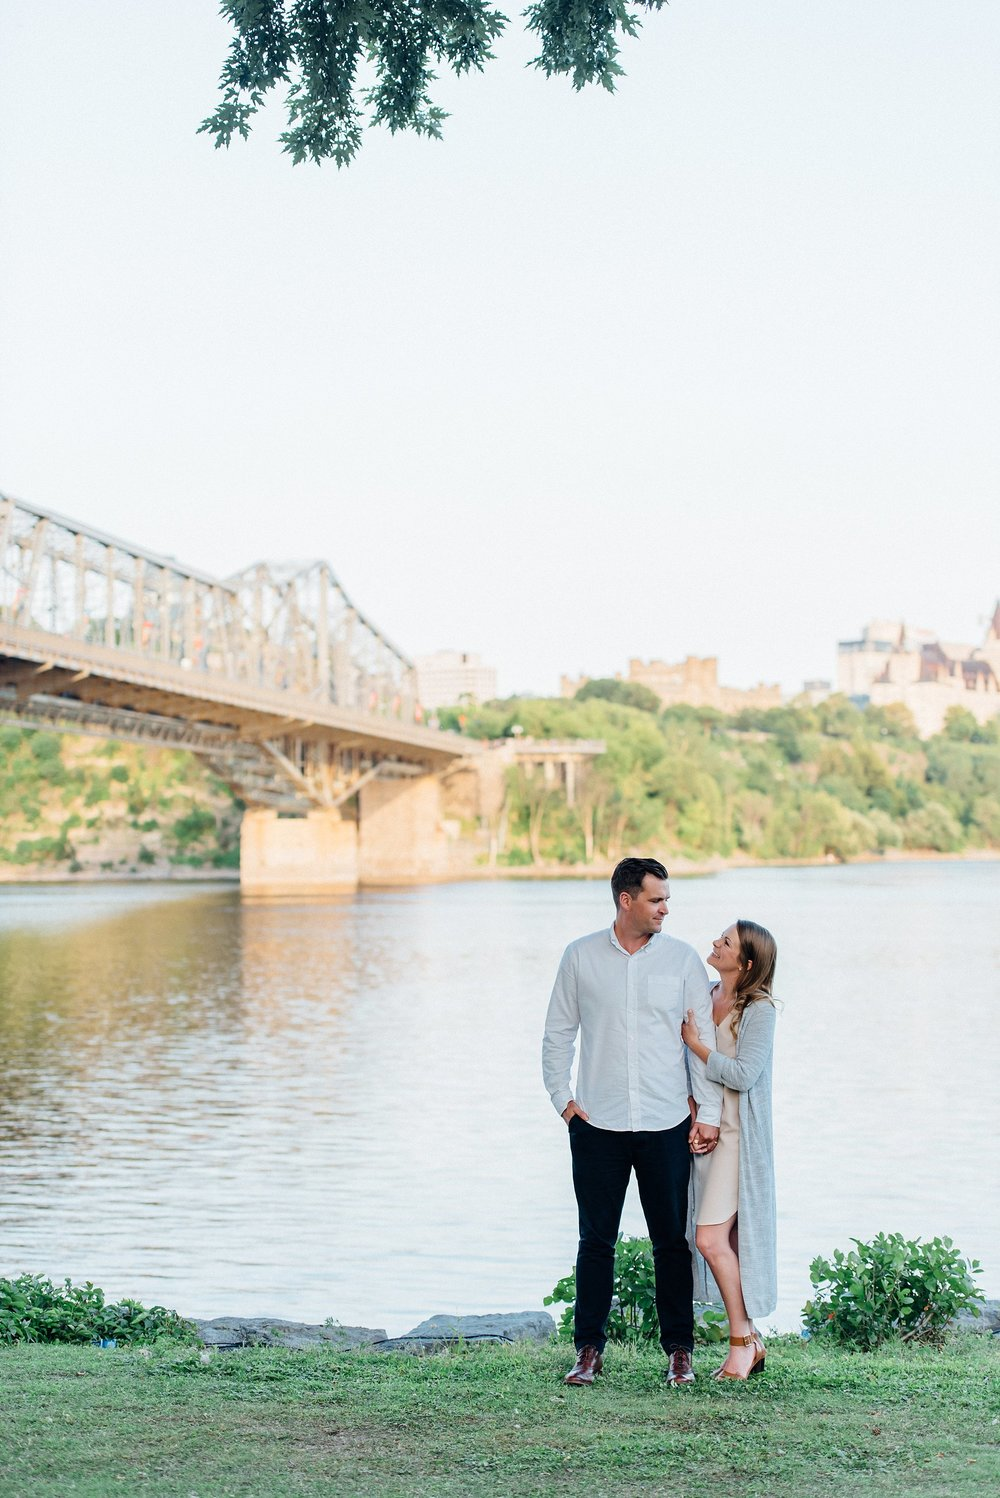 Ali and Batoul Photography - light, airy, indie documentary Ottawa wedding photographer_0317.jpg